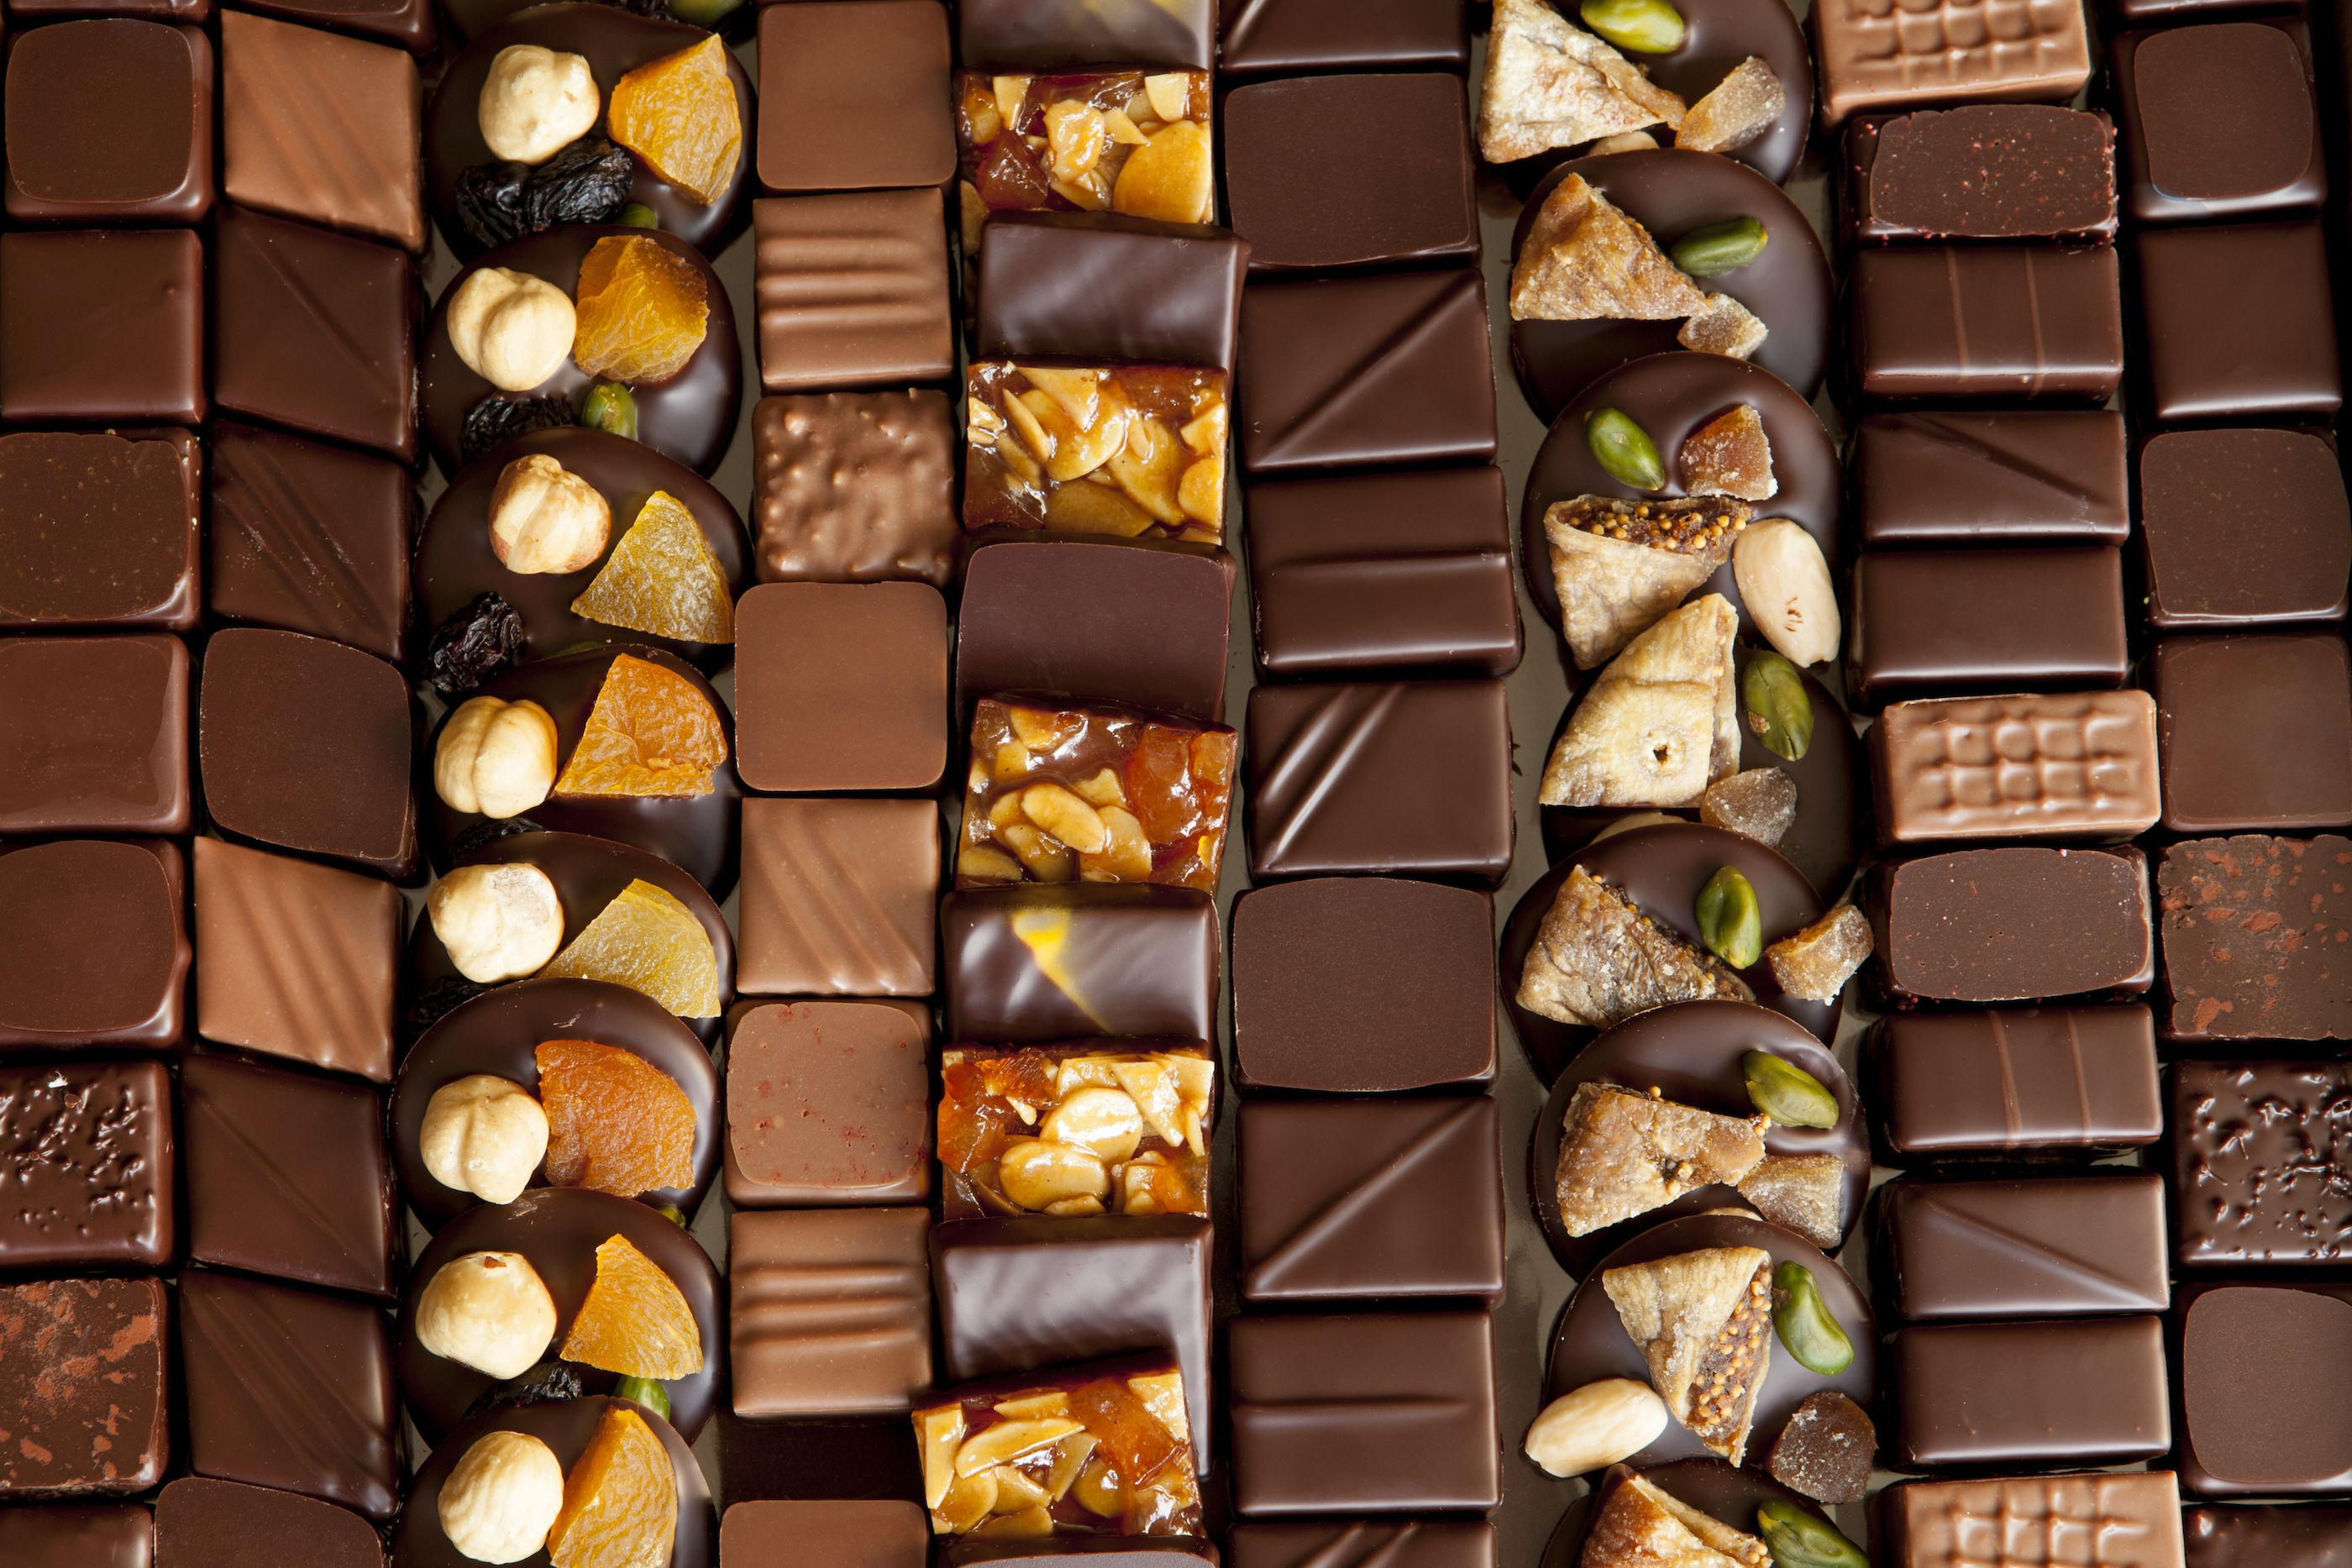 Best Chocolate Shops in Paris: From Bars to Ganaches